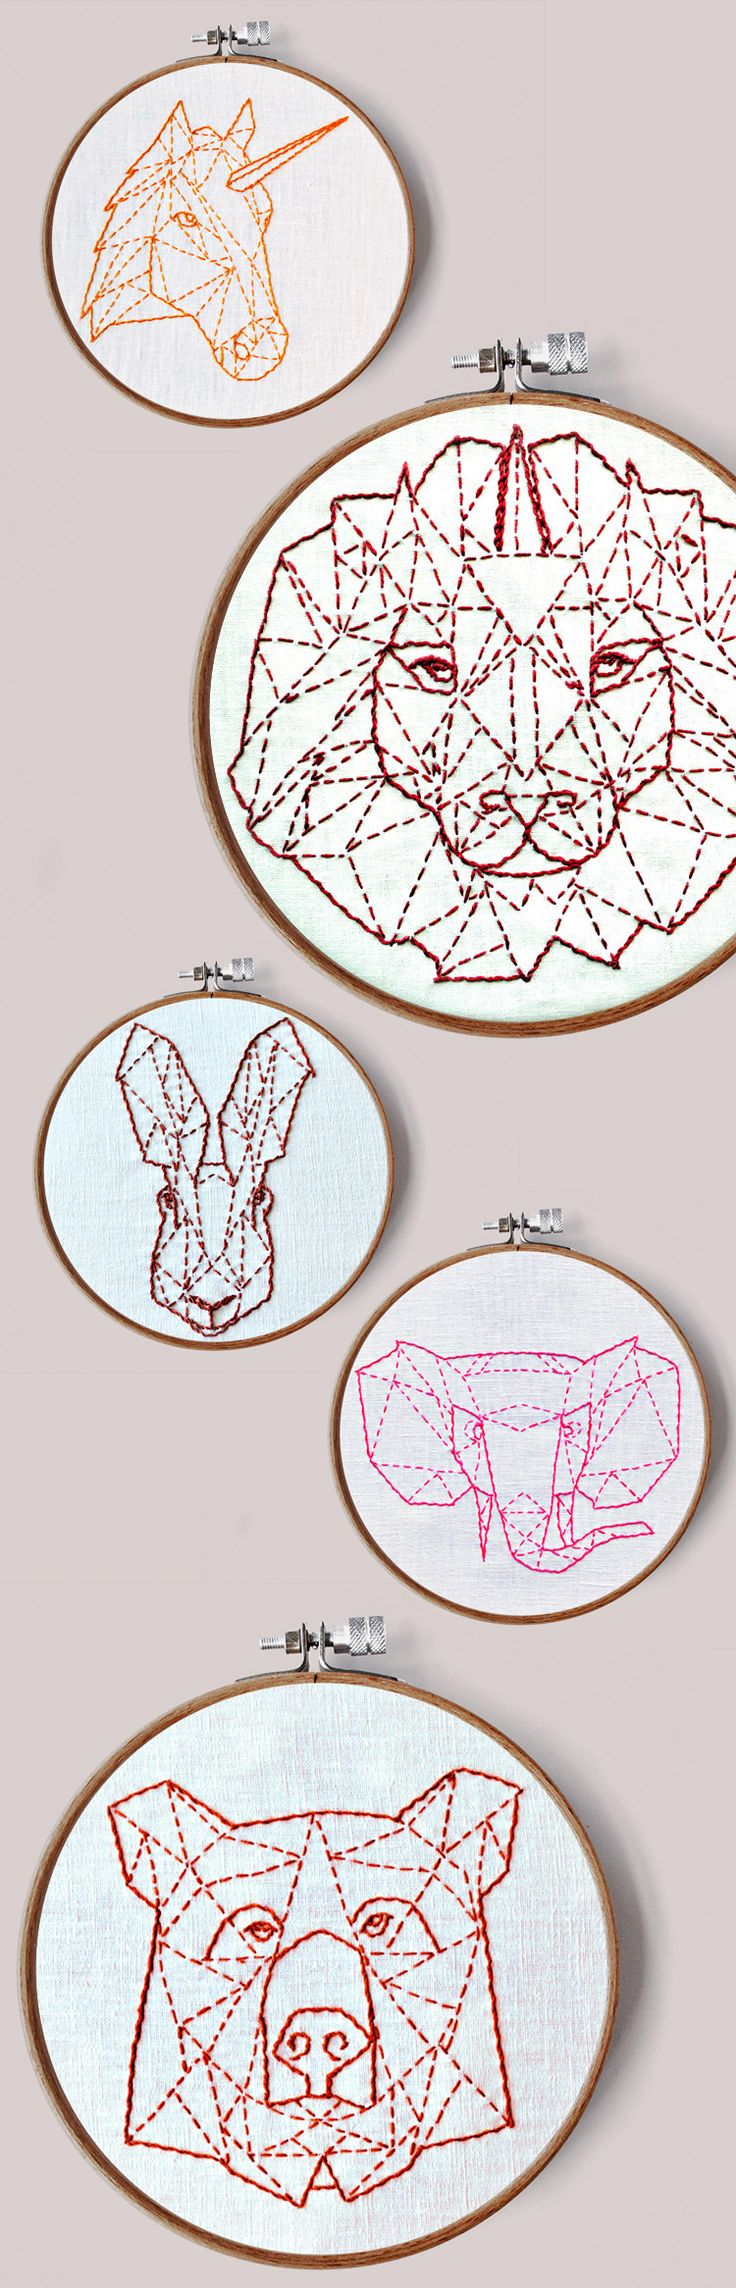 the geometric world of Pumora's hand embroidery - beginner embroidery patterns